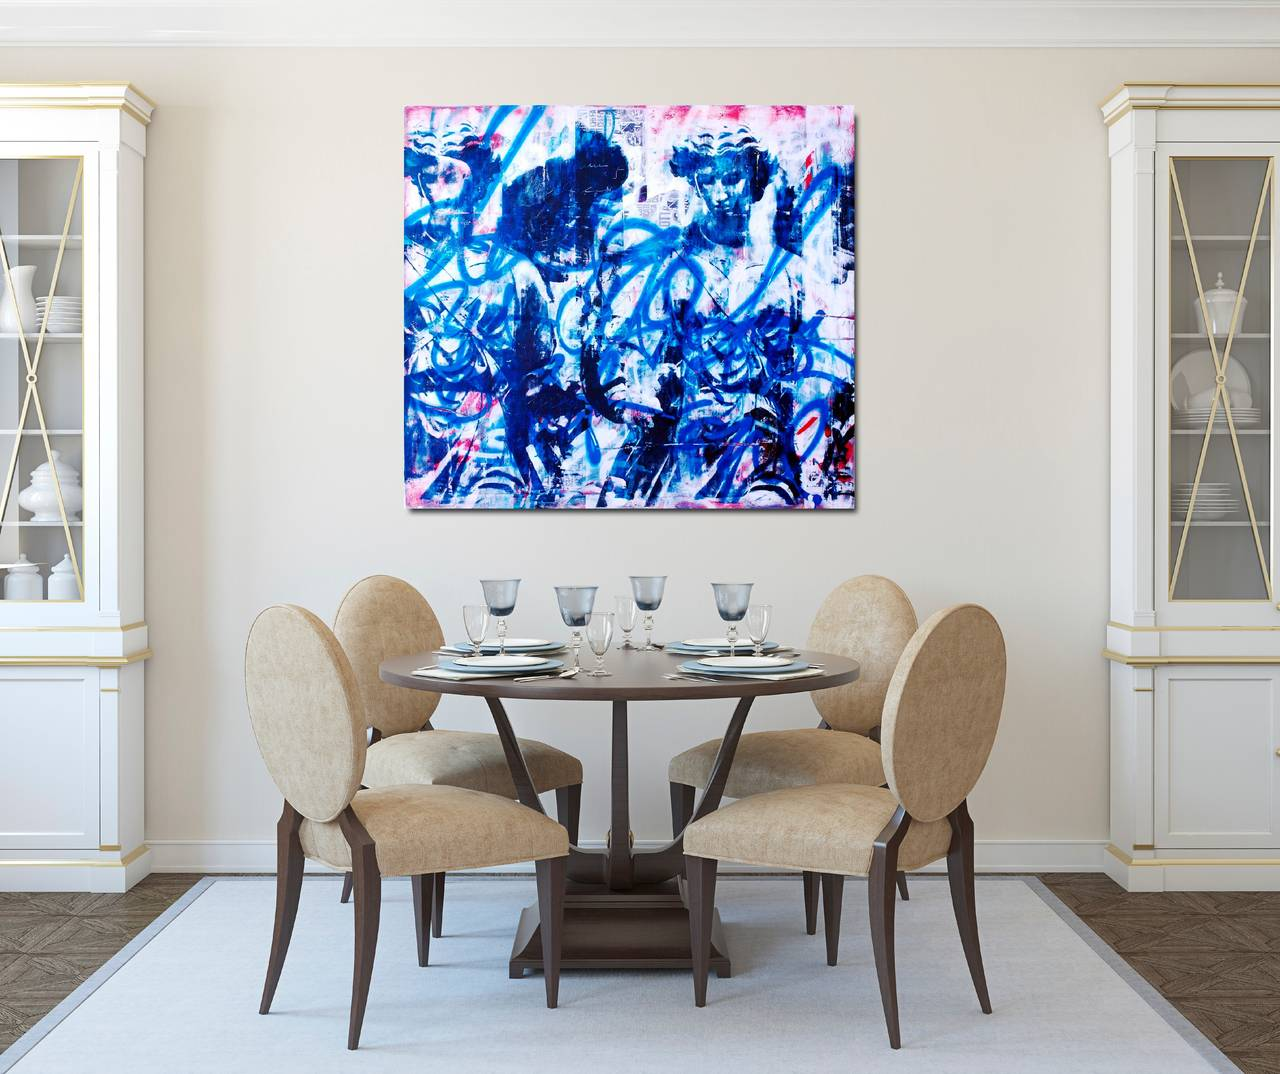 Ashleigh sumner the leap painting at 1stdibs for Espejos decorativos modernos